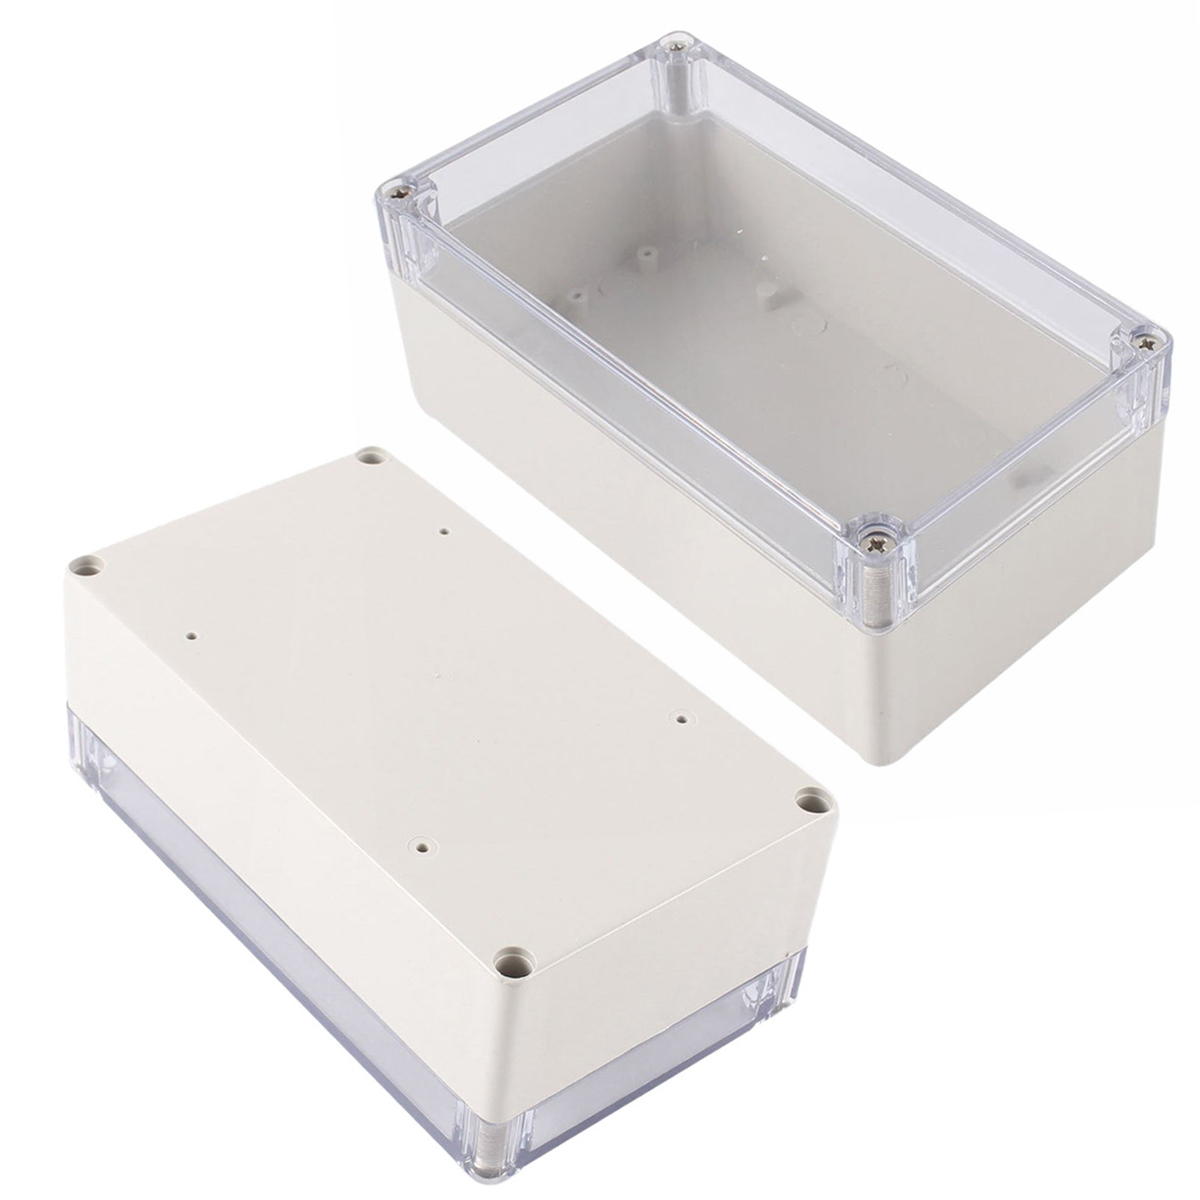 1pc Clear Waterproof Enclosure Case Cover High Quality Plastic Electronic Project Instrument Box 158mmx90mmx60mm 1pc waterproof enclosure box plastic electronic project instrument case 200x120x75mm